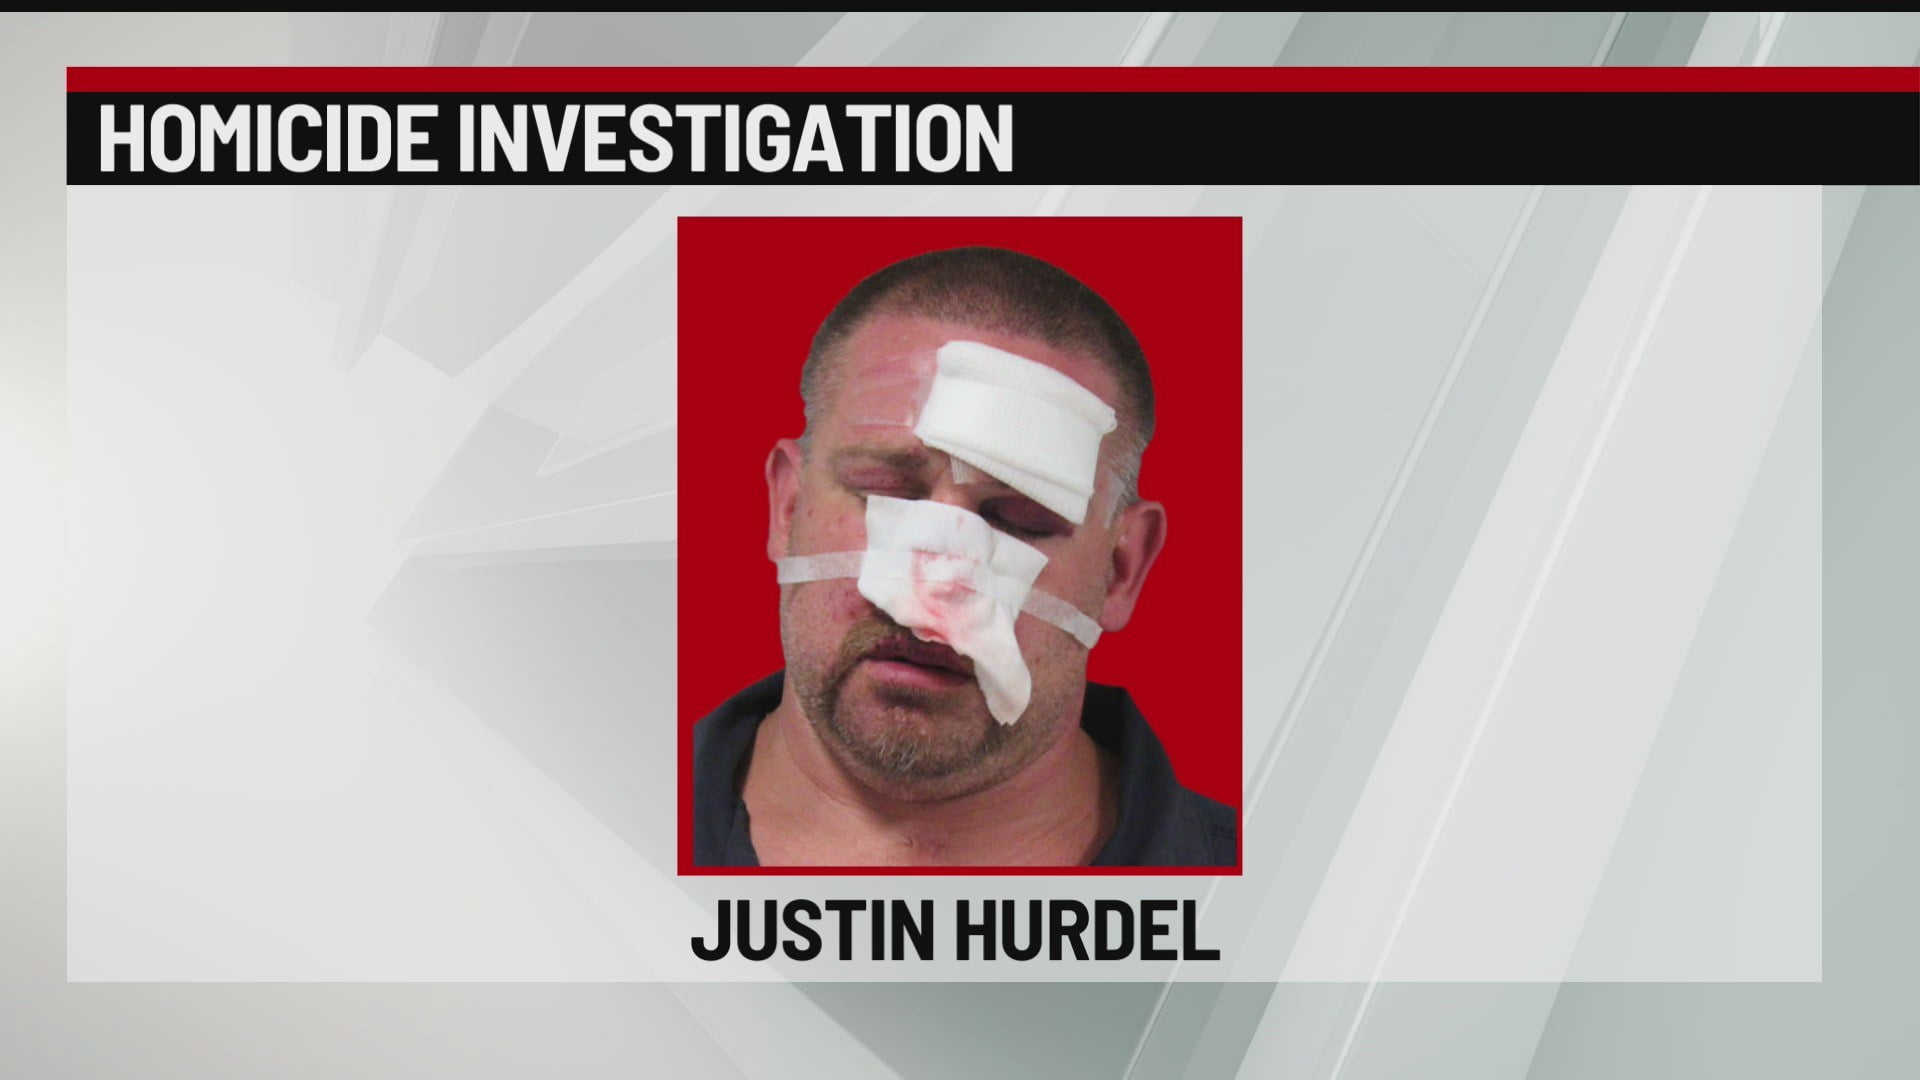 Justin Hurdel Had a Long History of Abusing and Terrorizing Women Before His Wife's Murder This Week 1